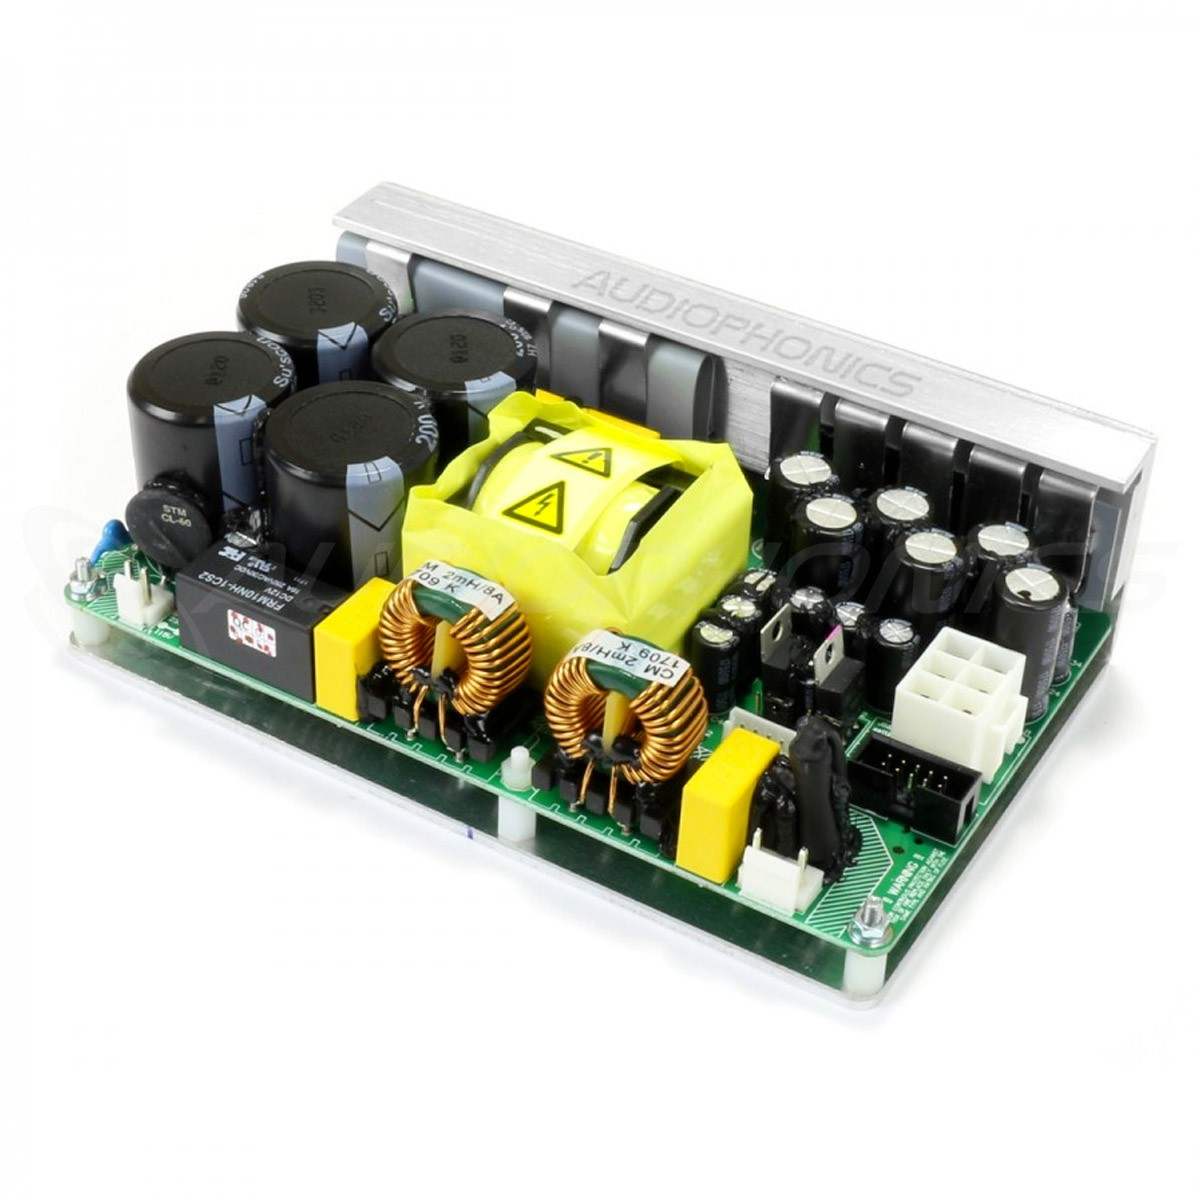 HYPEX SMPS1200A700 Switching Power Supply Module 1200W 2x85V